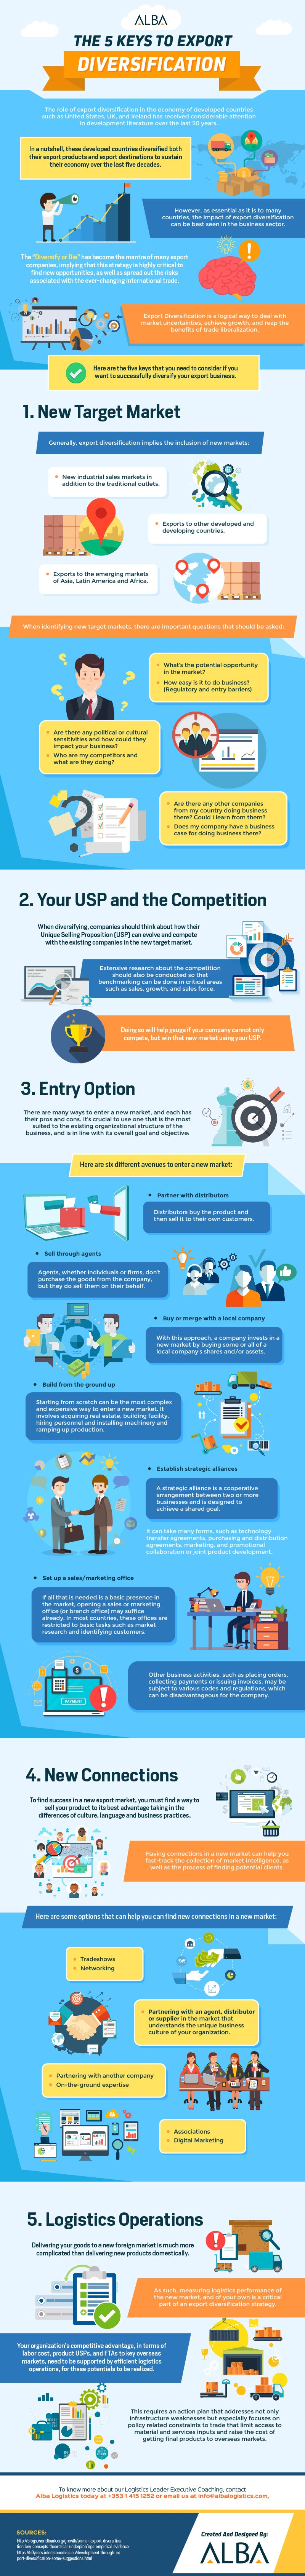 Export Diversification: 5 Key Strategies and Action Plans - Infographic